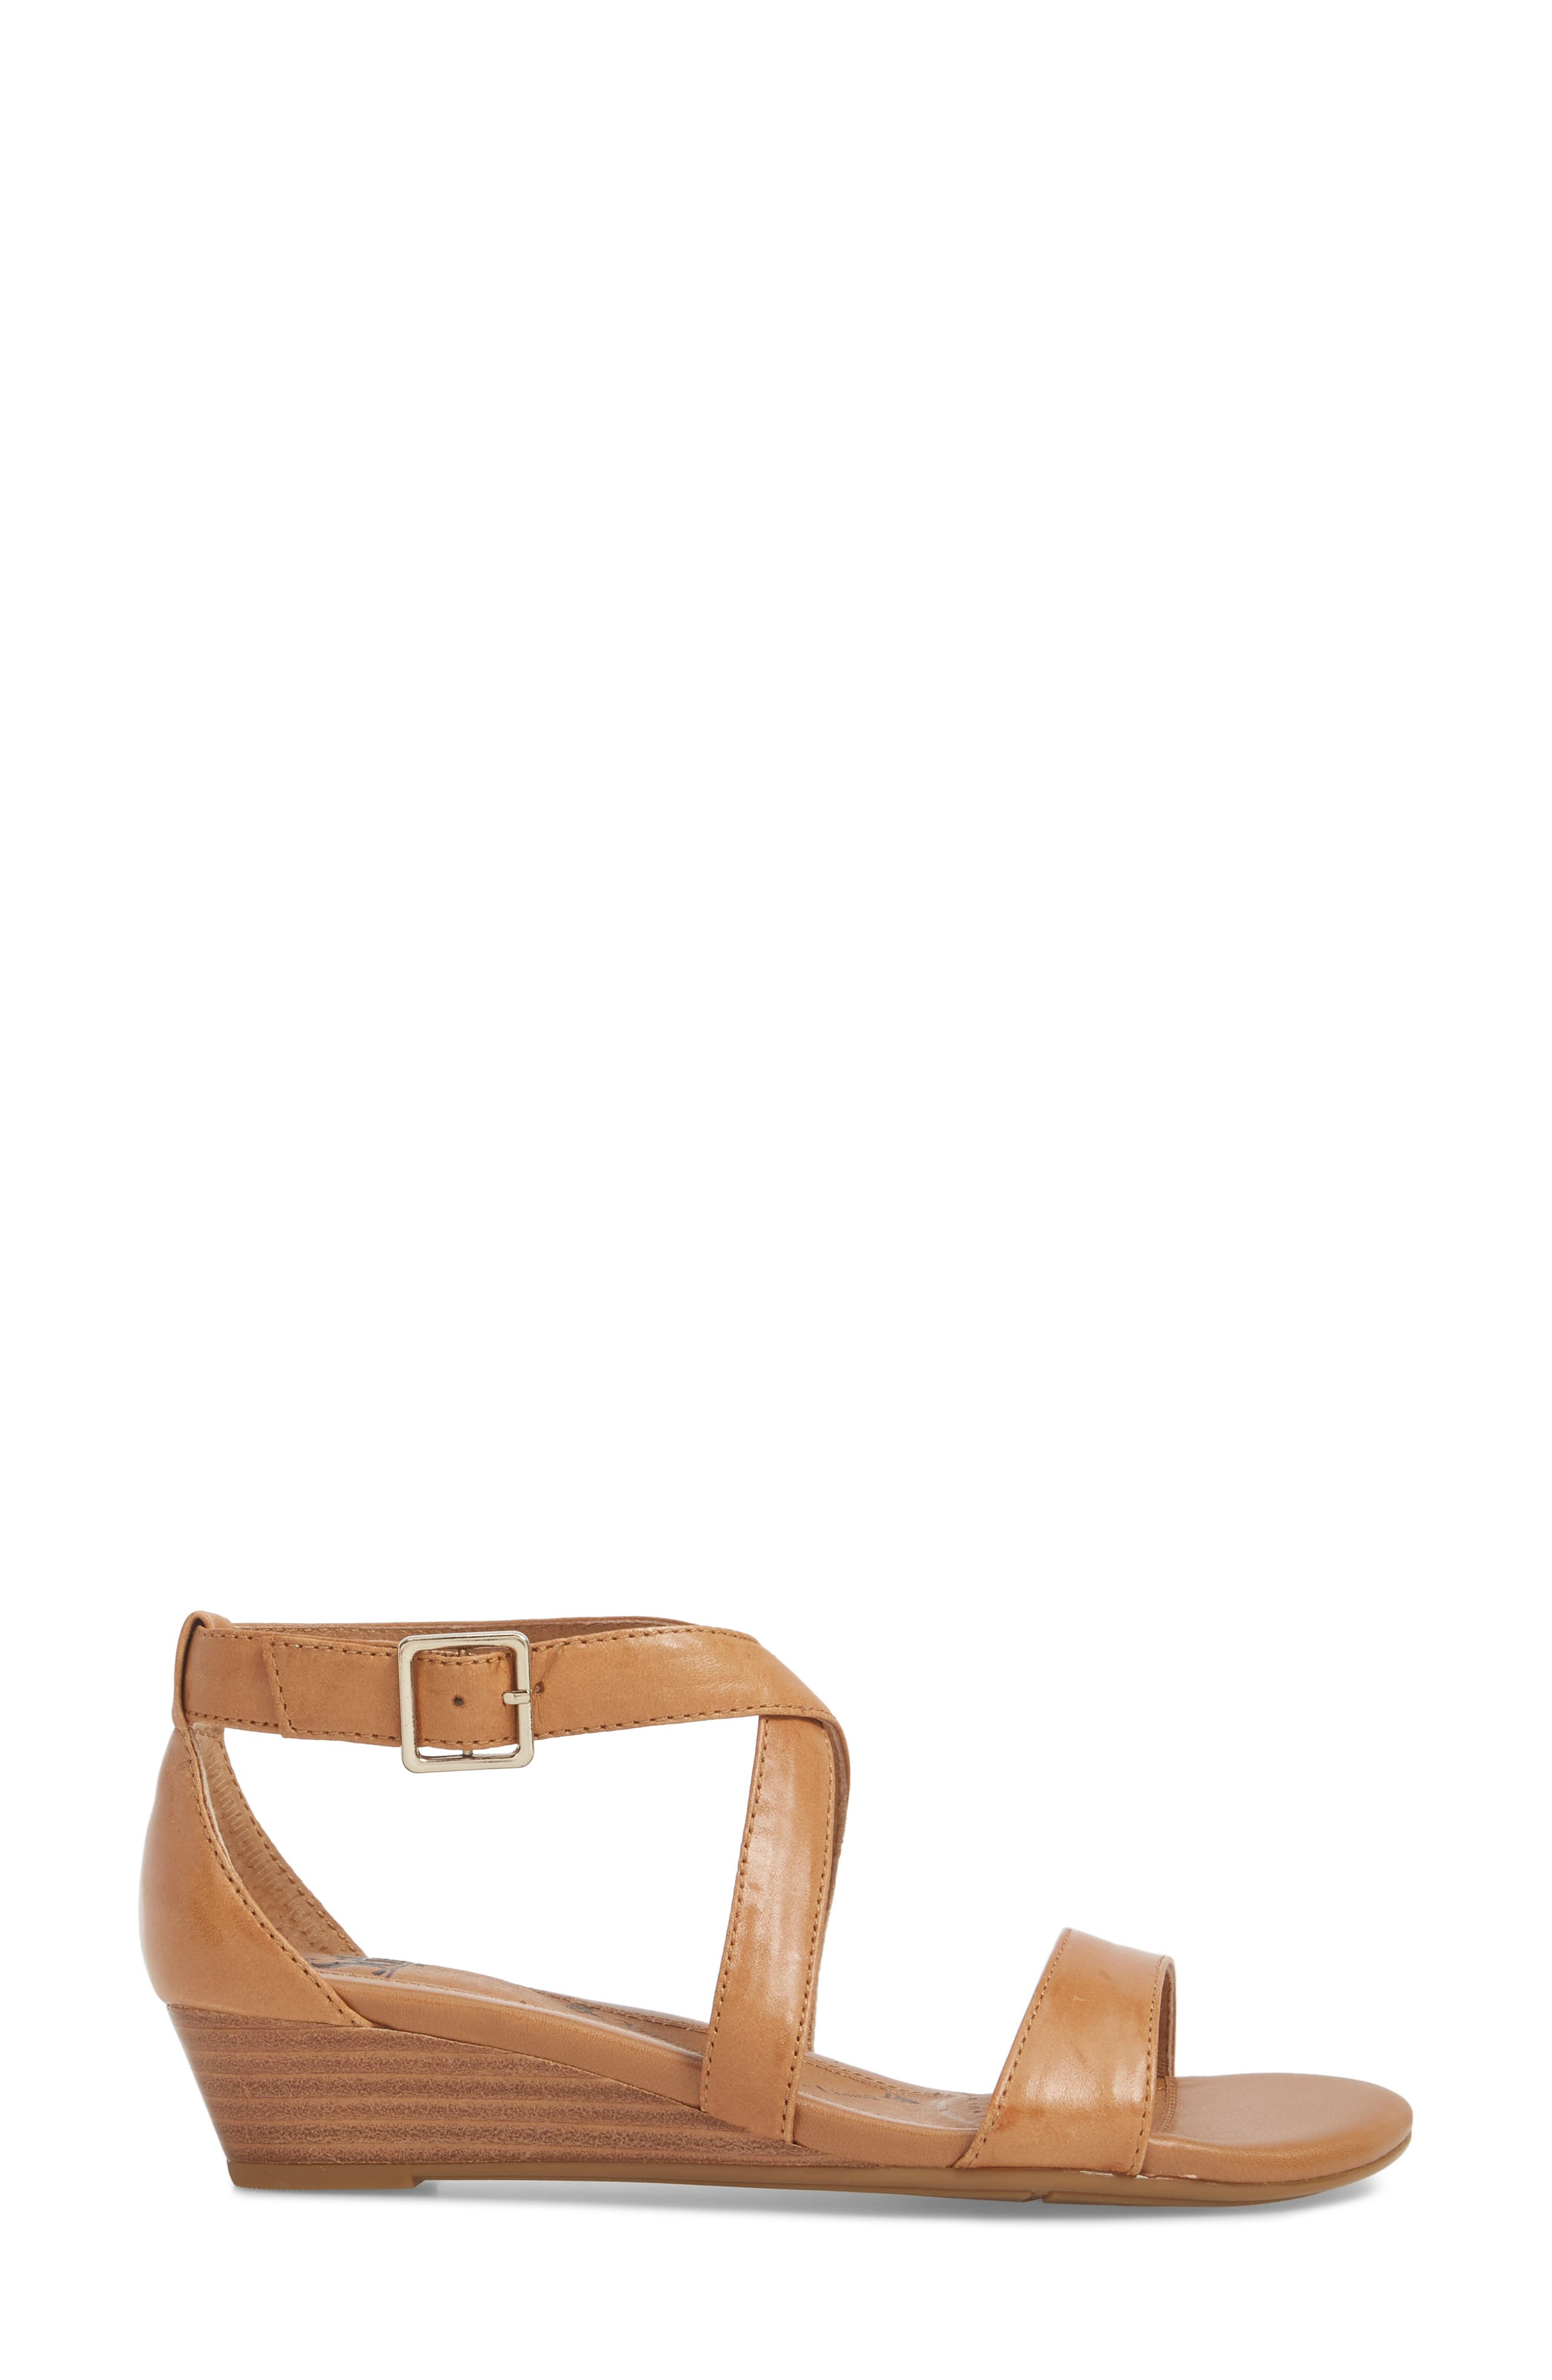 'Innis' Low Wedge Sandal,                             Alternate thumbnail 27, color,